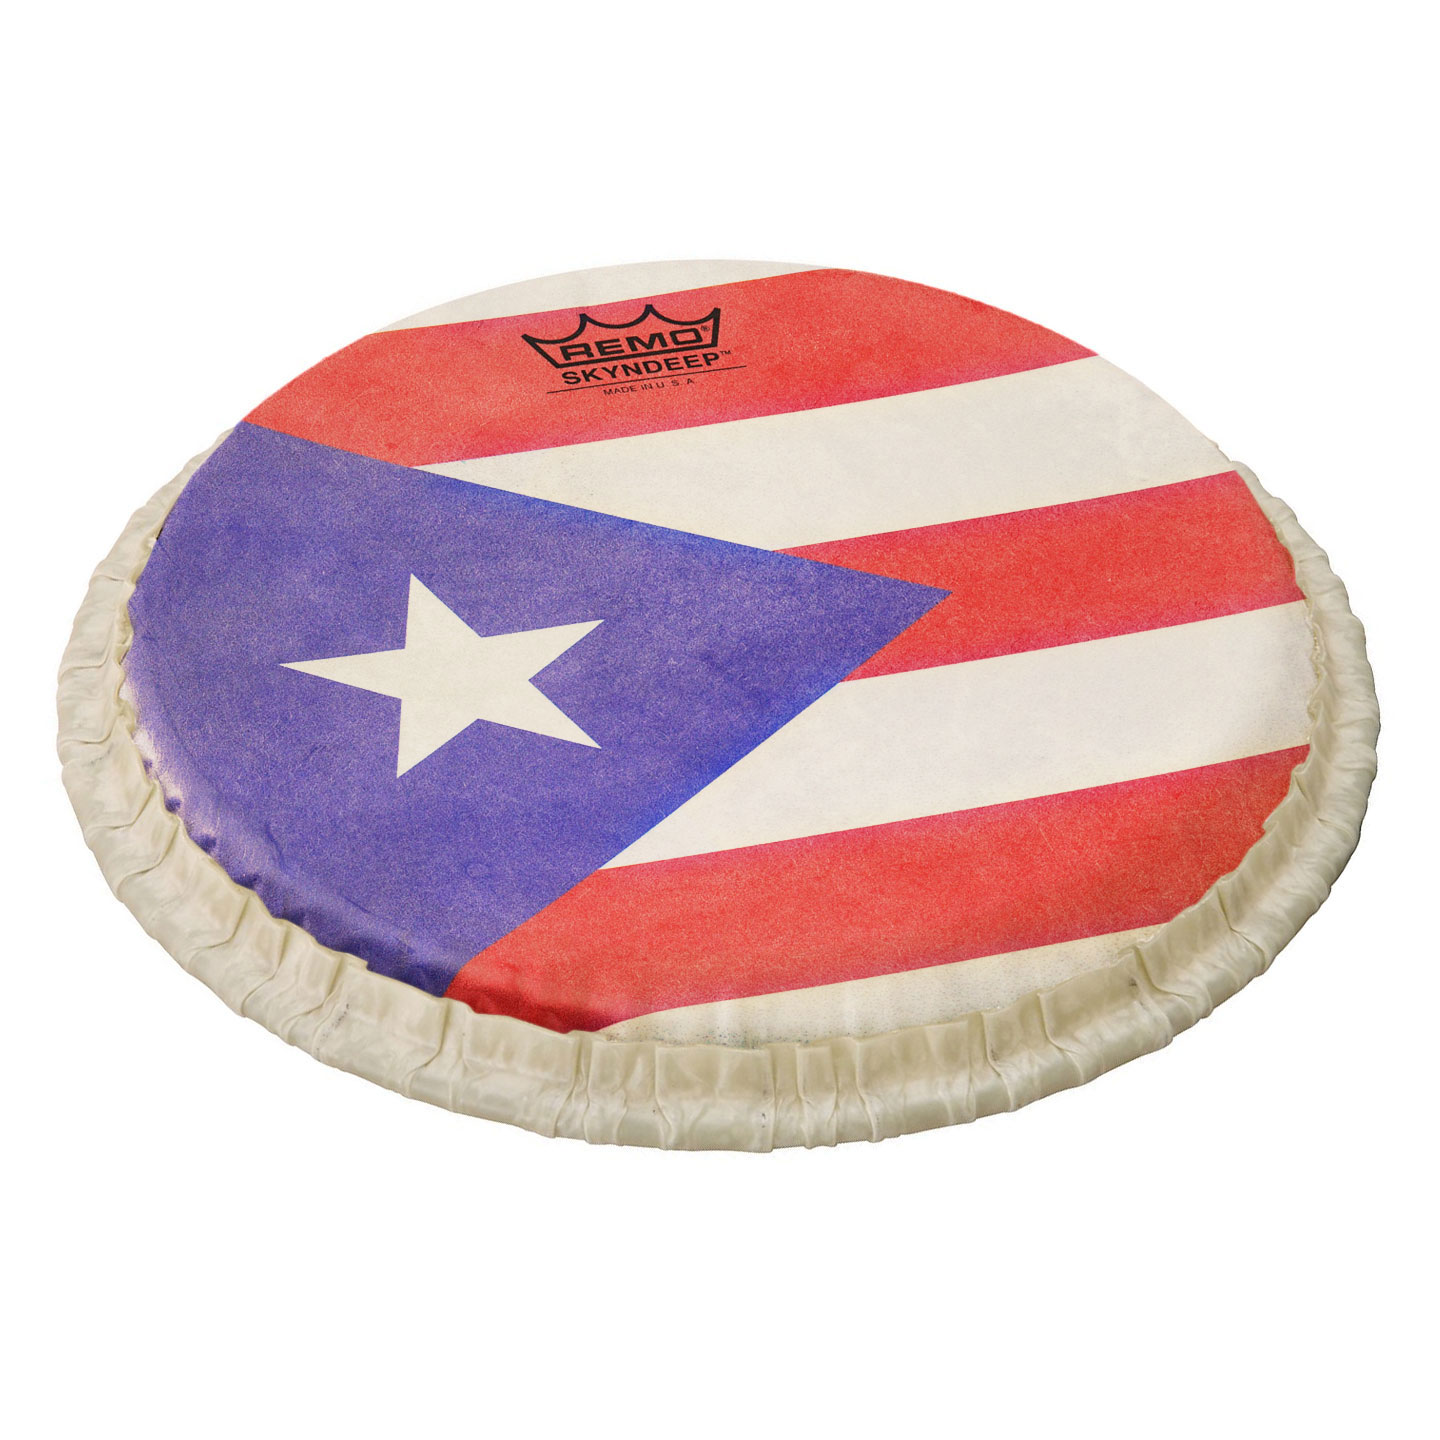 "Remo 7.15"" Tucked Skyndeep Bongo Drum Head with Puerto Rican Flag Graphic"